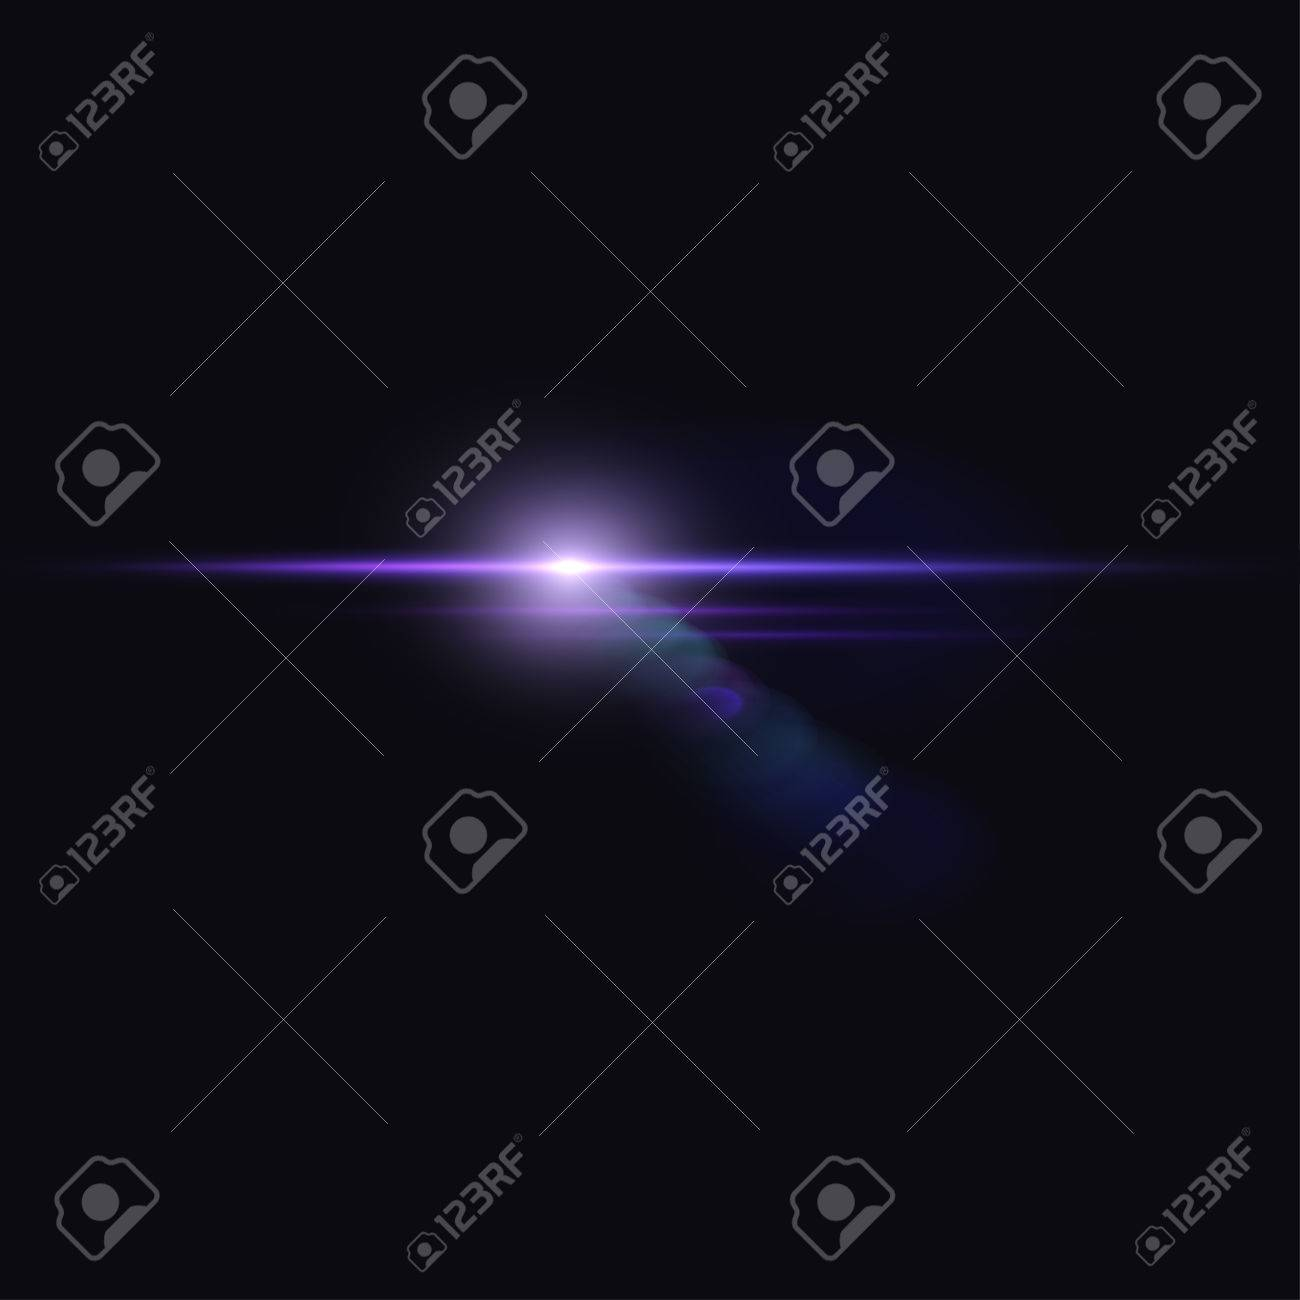 Purple star effect simple flare and bokeh on dark background purple star effect simple flare and bokeh on dark background release clipping mask for voltagebd Gallery